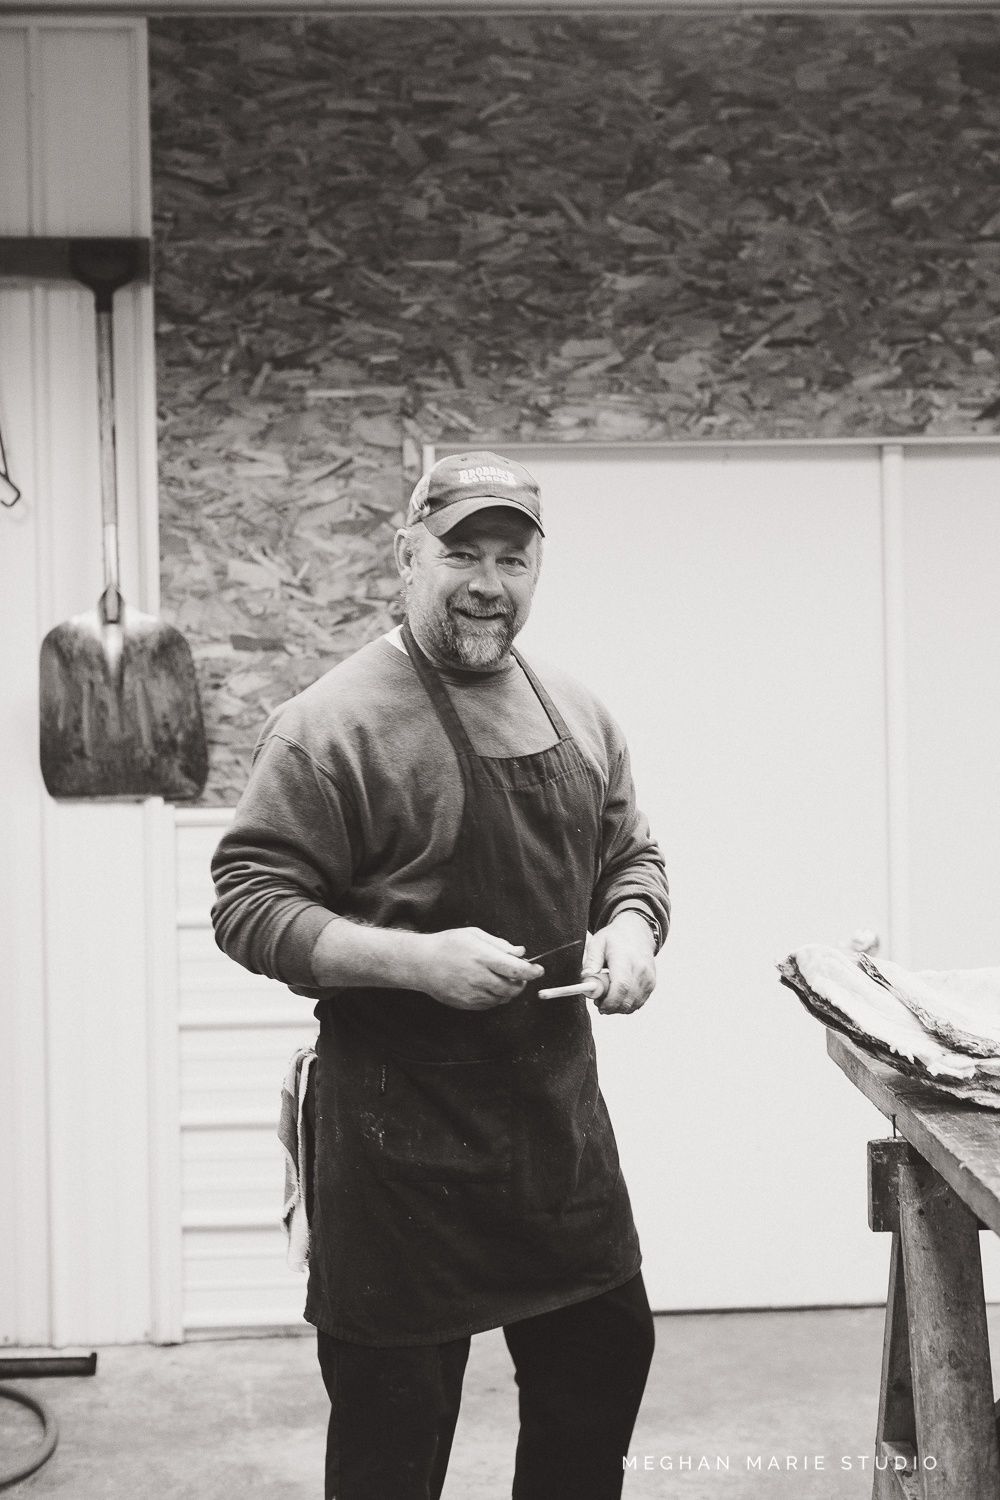 My father. Connoisseur of meats, hardest worker EVER, best bear hugs.